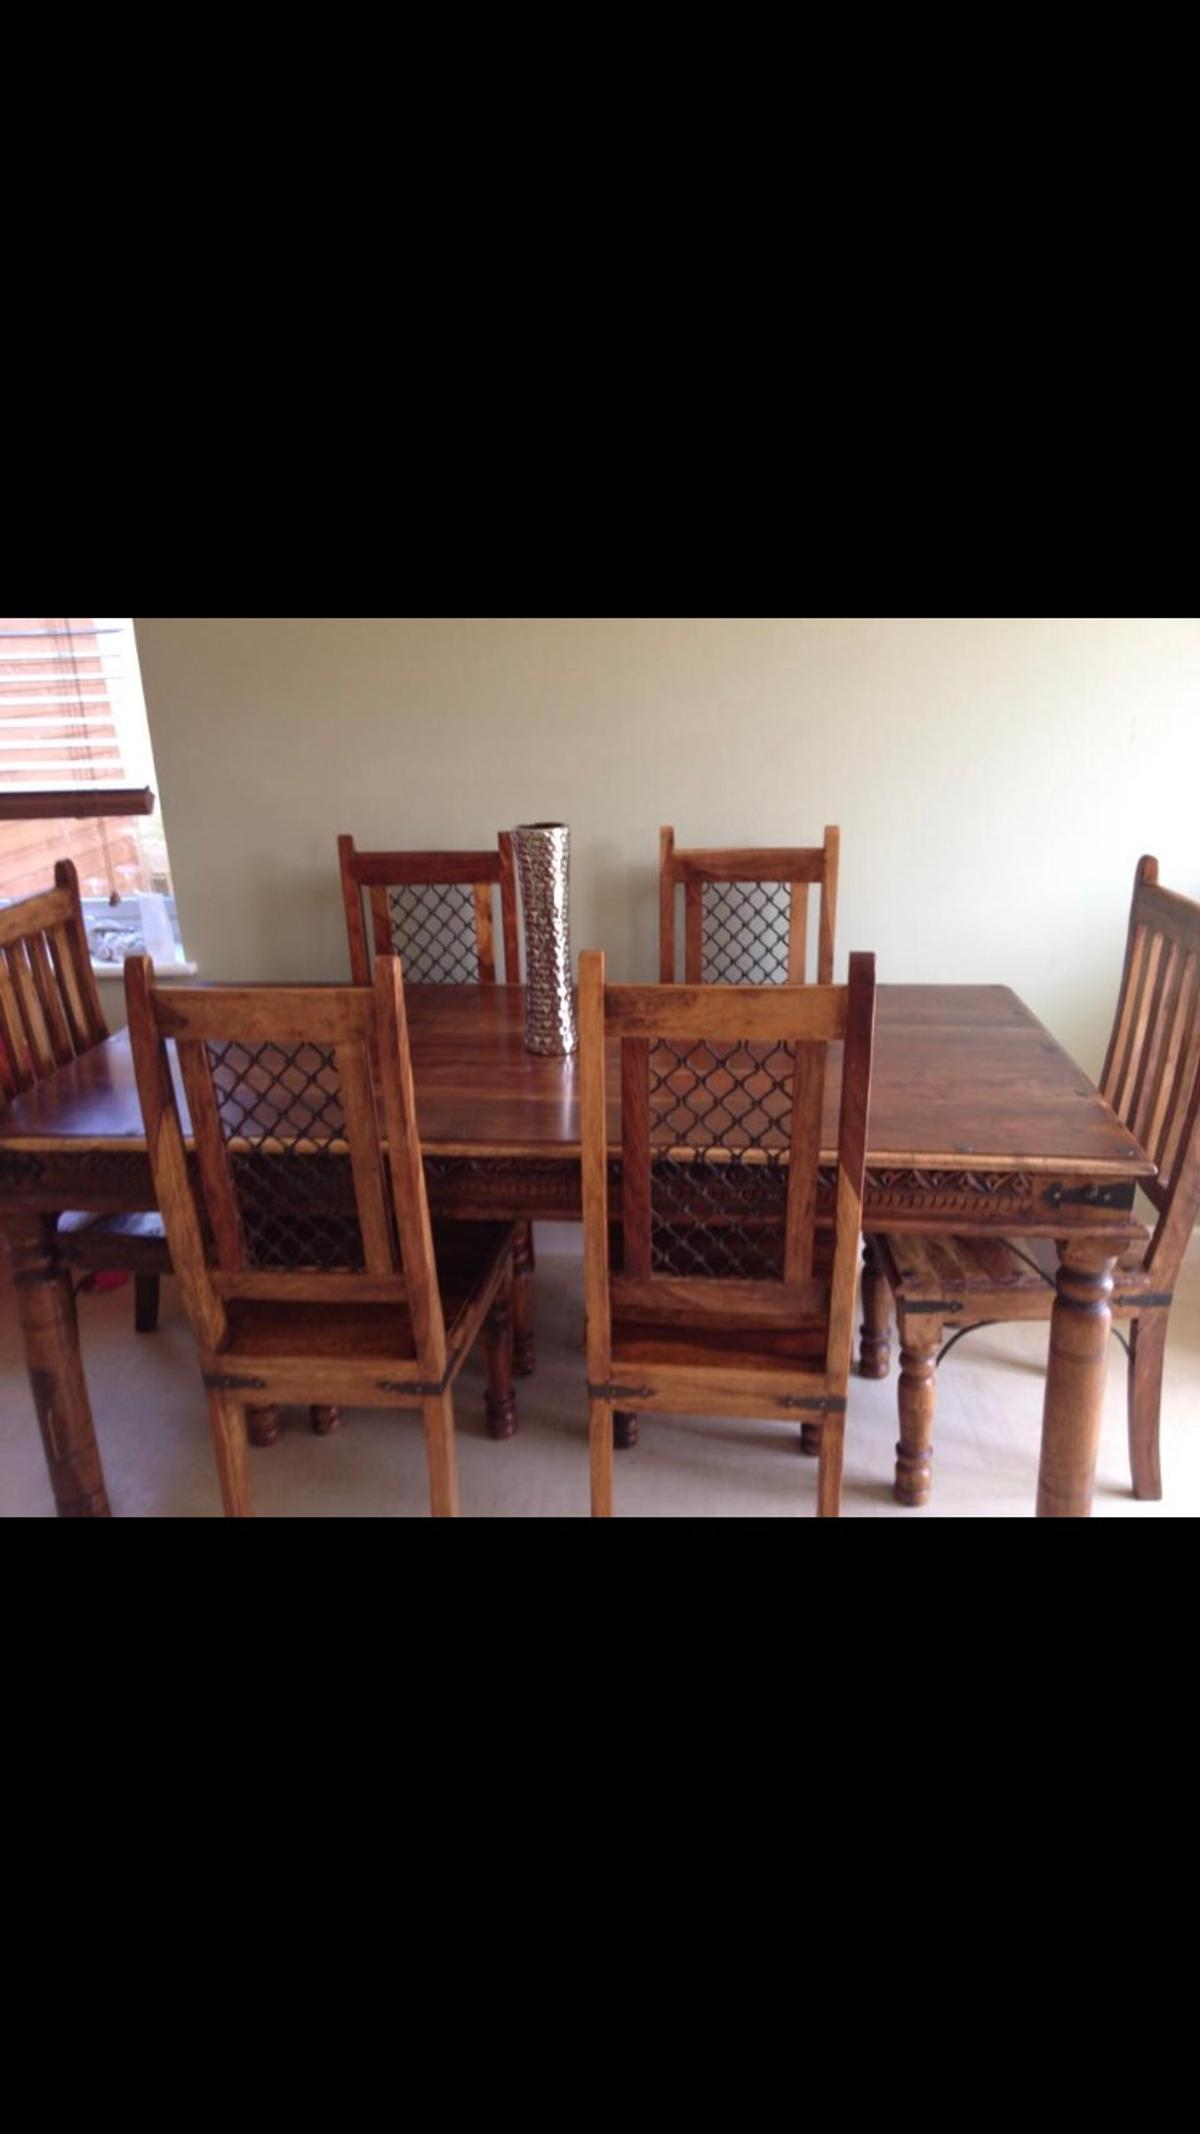 6 Chair Dining Table In India